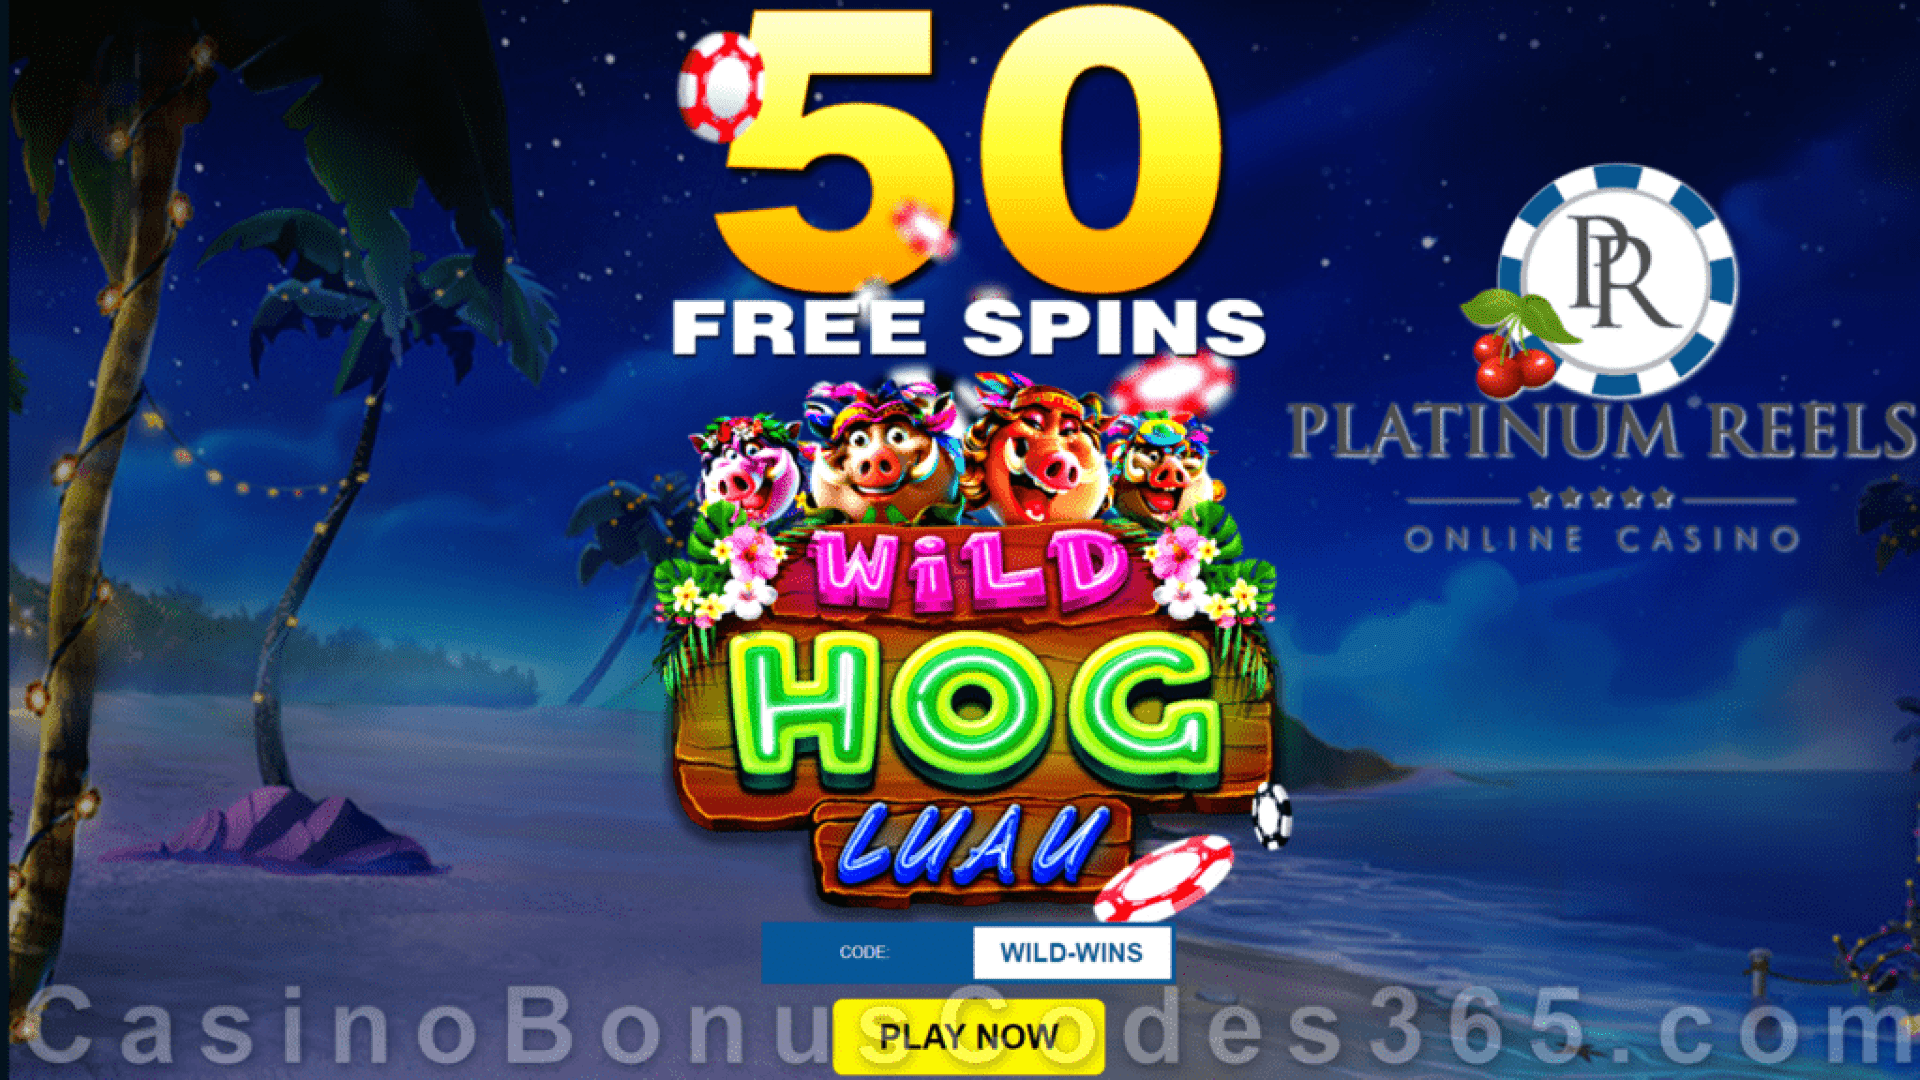 Platinum Reels 50 No Deposit FREE RTG Wild Hog Luau Spins Welcome Offer